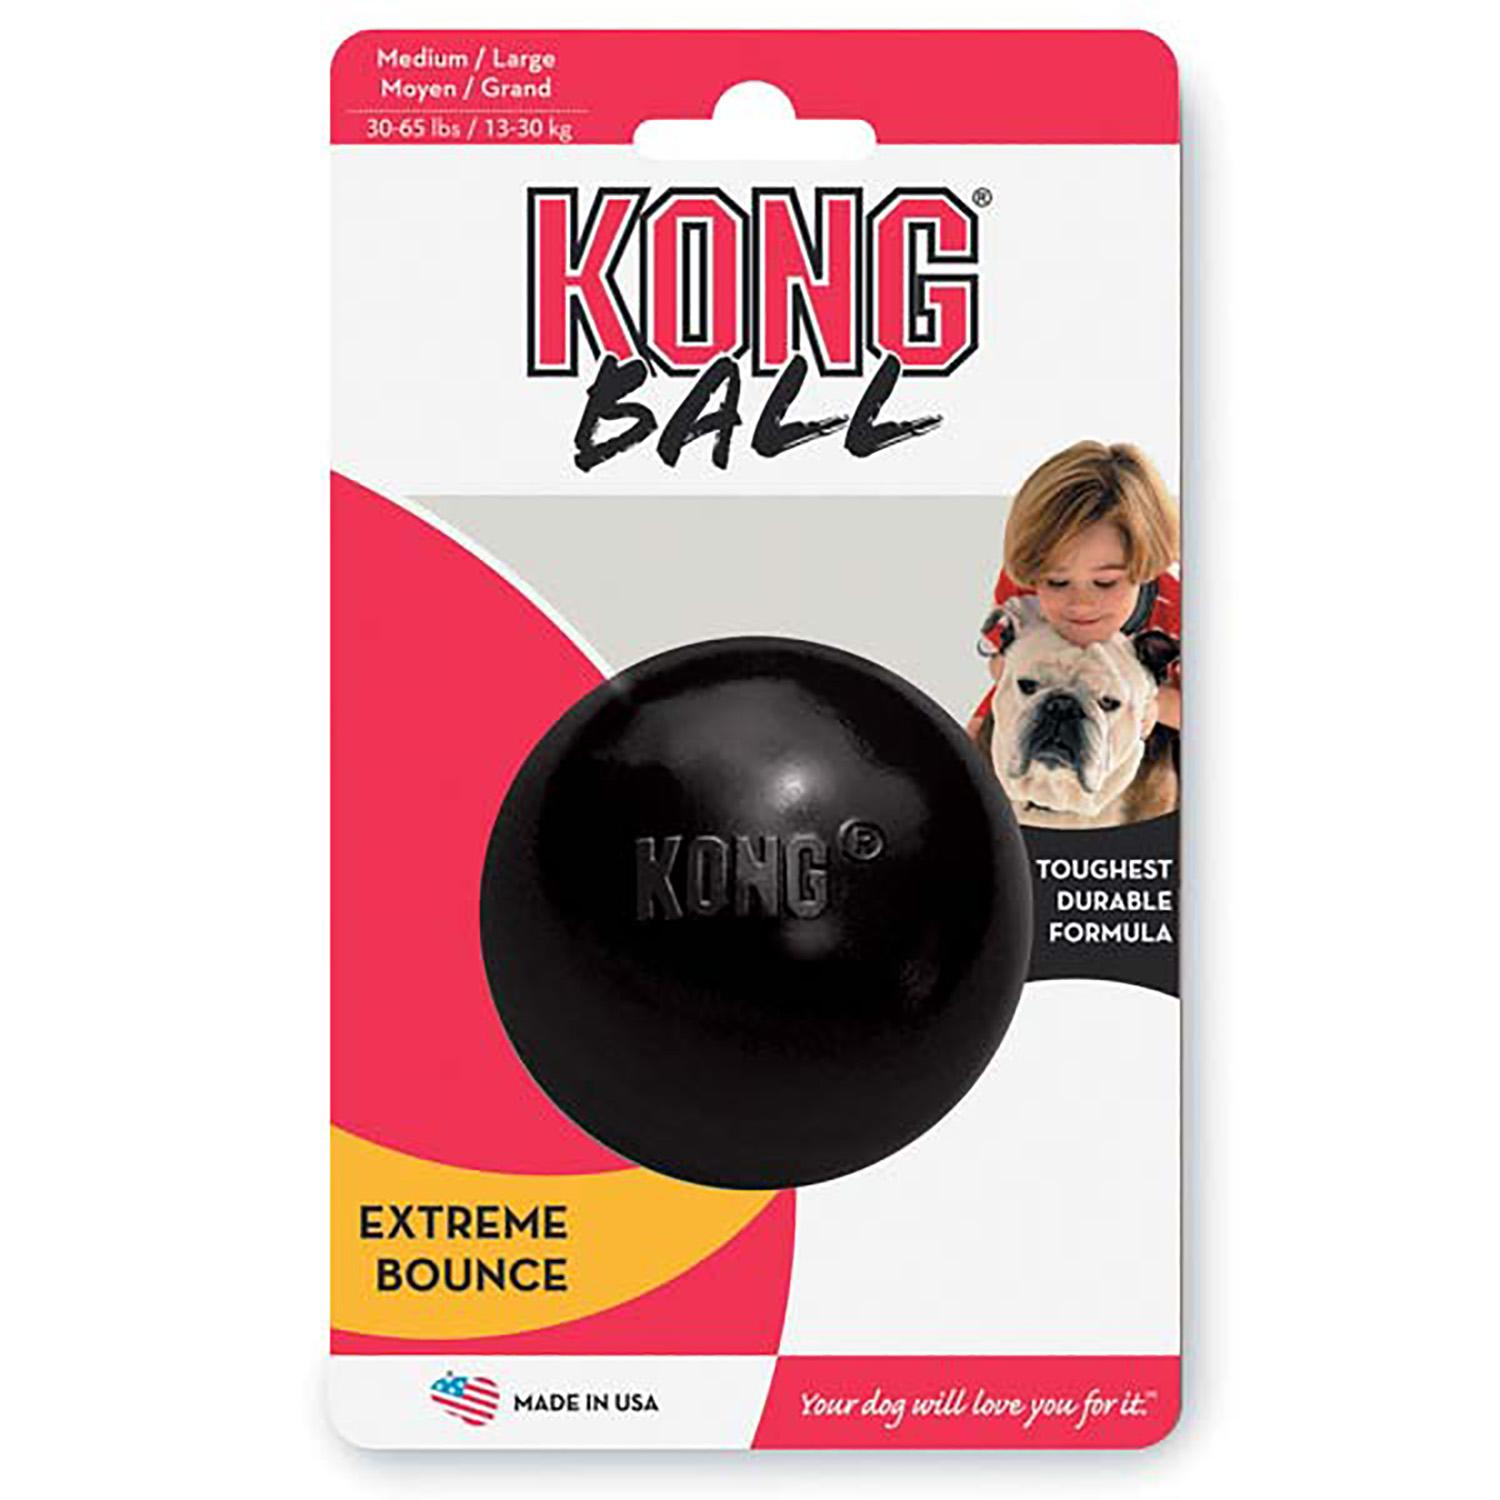 KONG Extreme Ball Dog Toy - Black